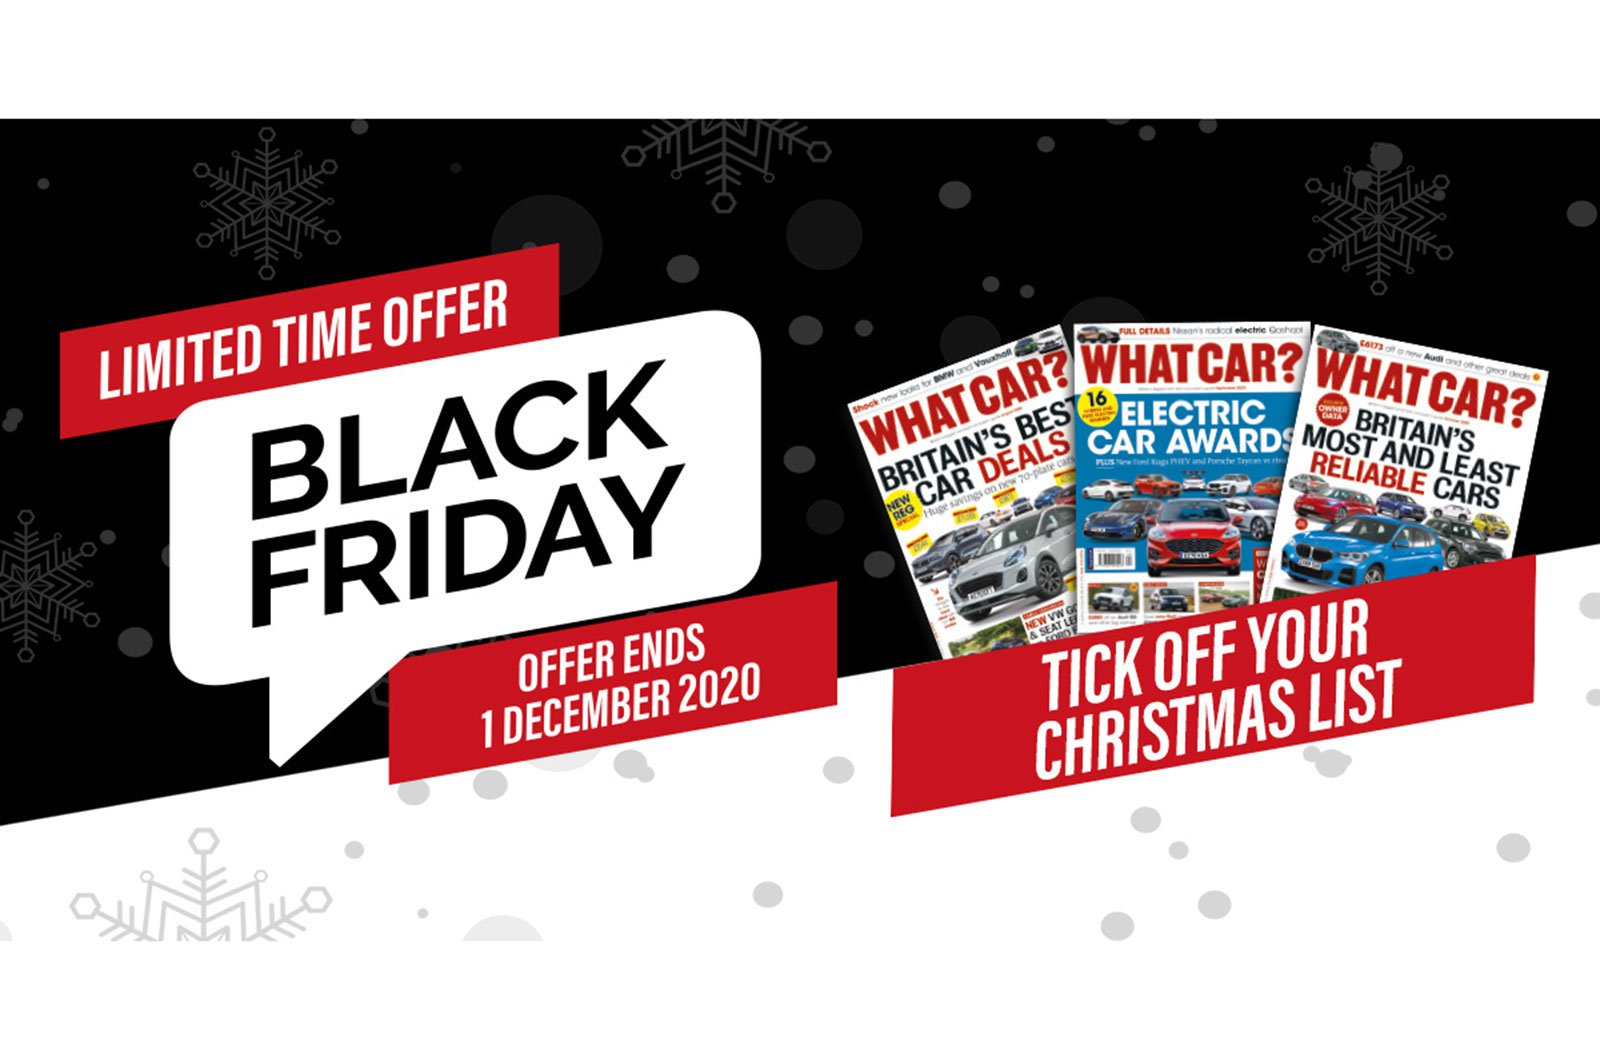 What Car? Black Friday subscriptions offer